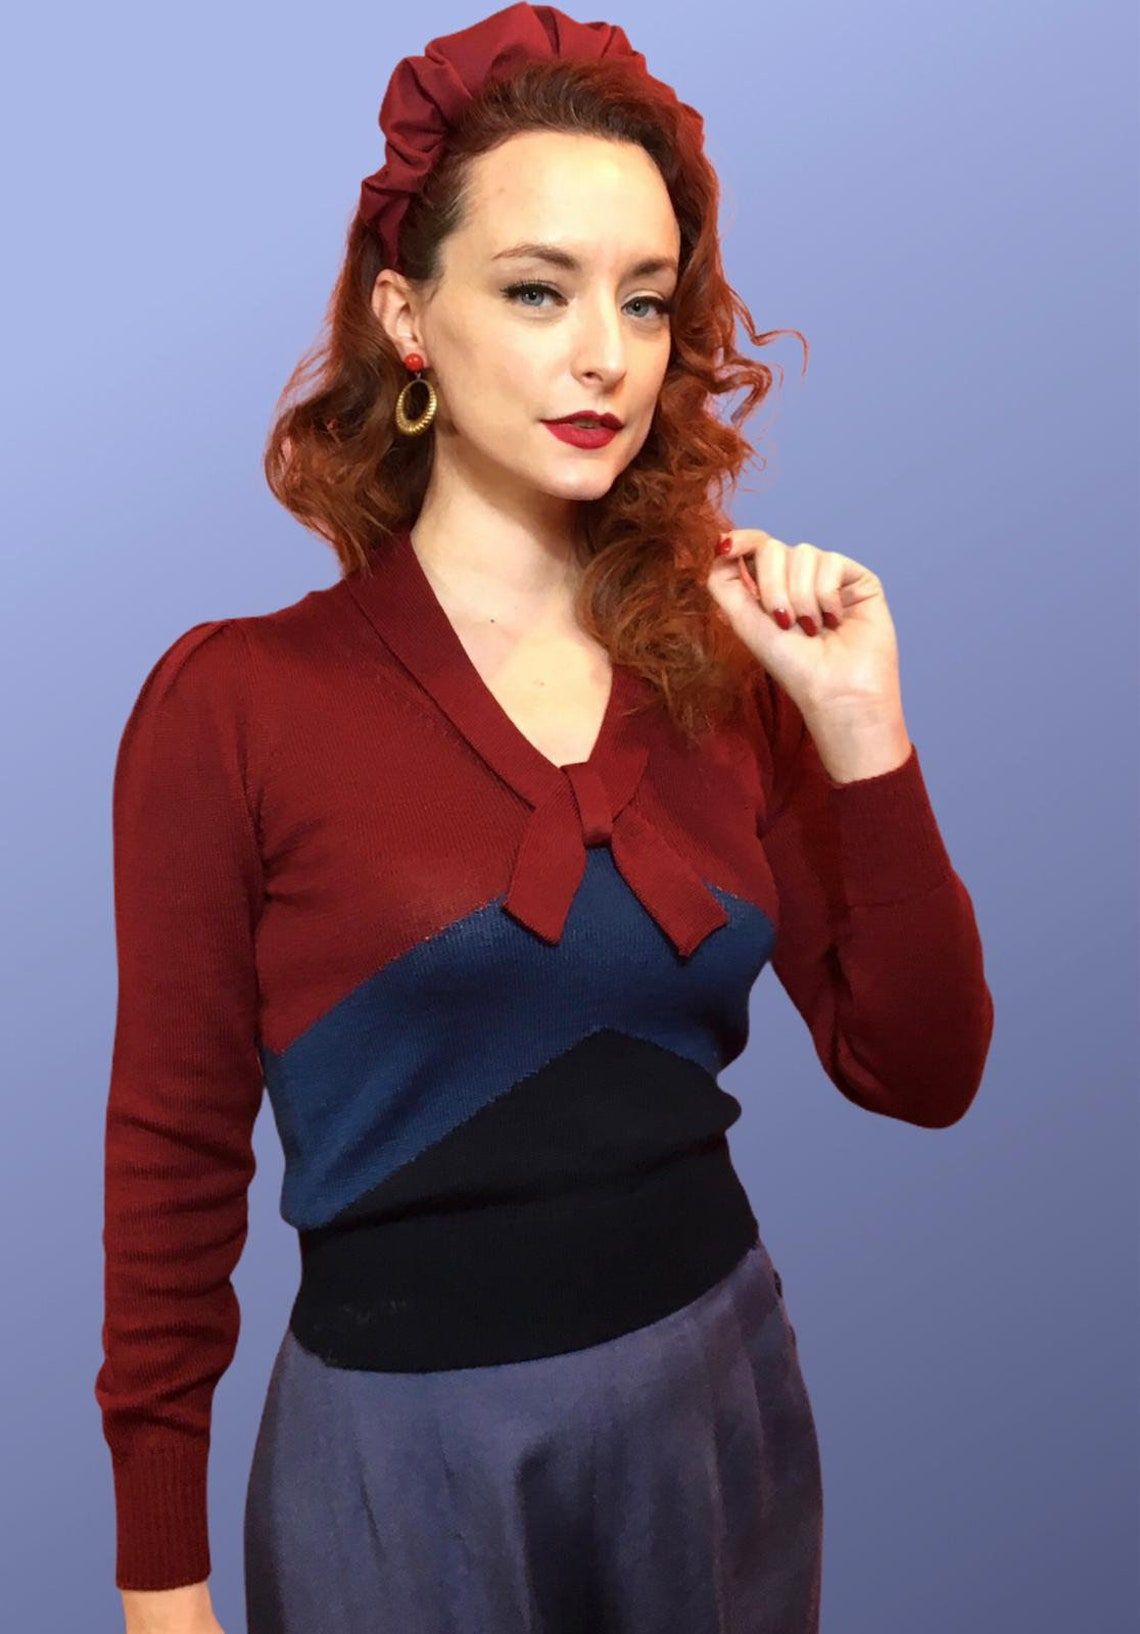 "Vintage Sweaters & Cardigans: 1940s, 1950s, 1960s Vintage 1940s Style Color Block Woolen ""Loretta"" Sweater Jumper - size SML $114.94 AT vintagedancer.com"